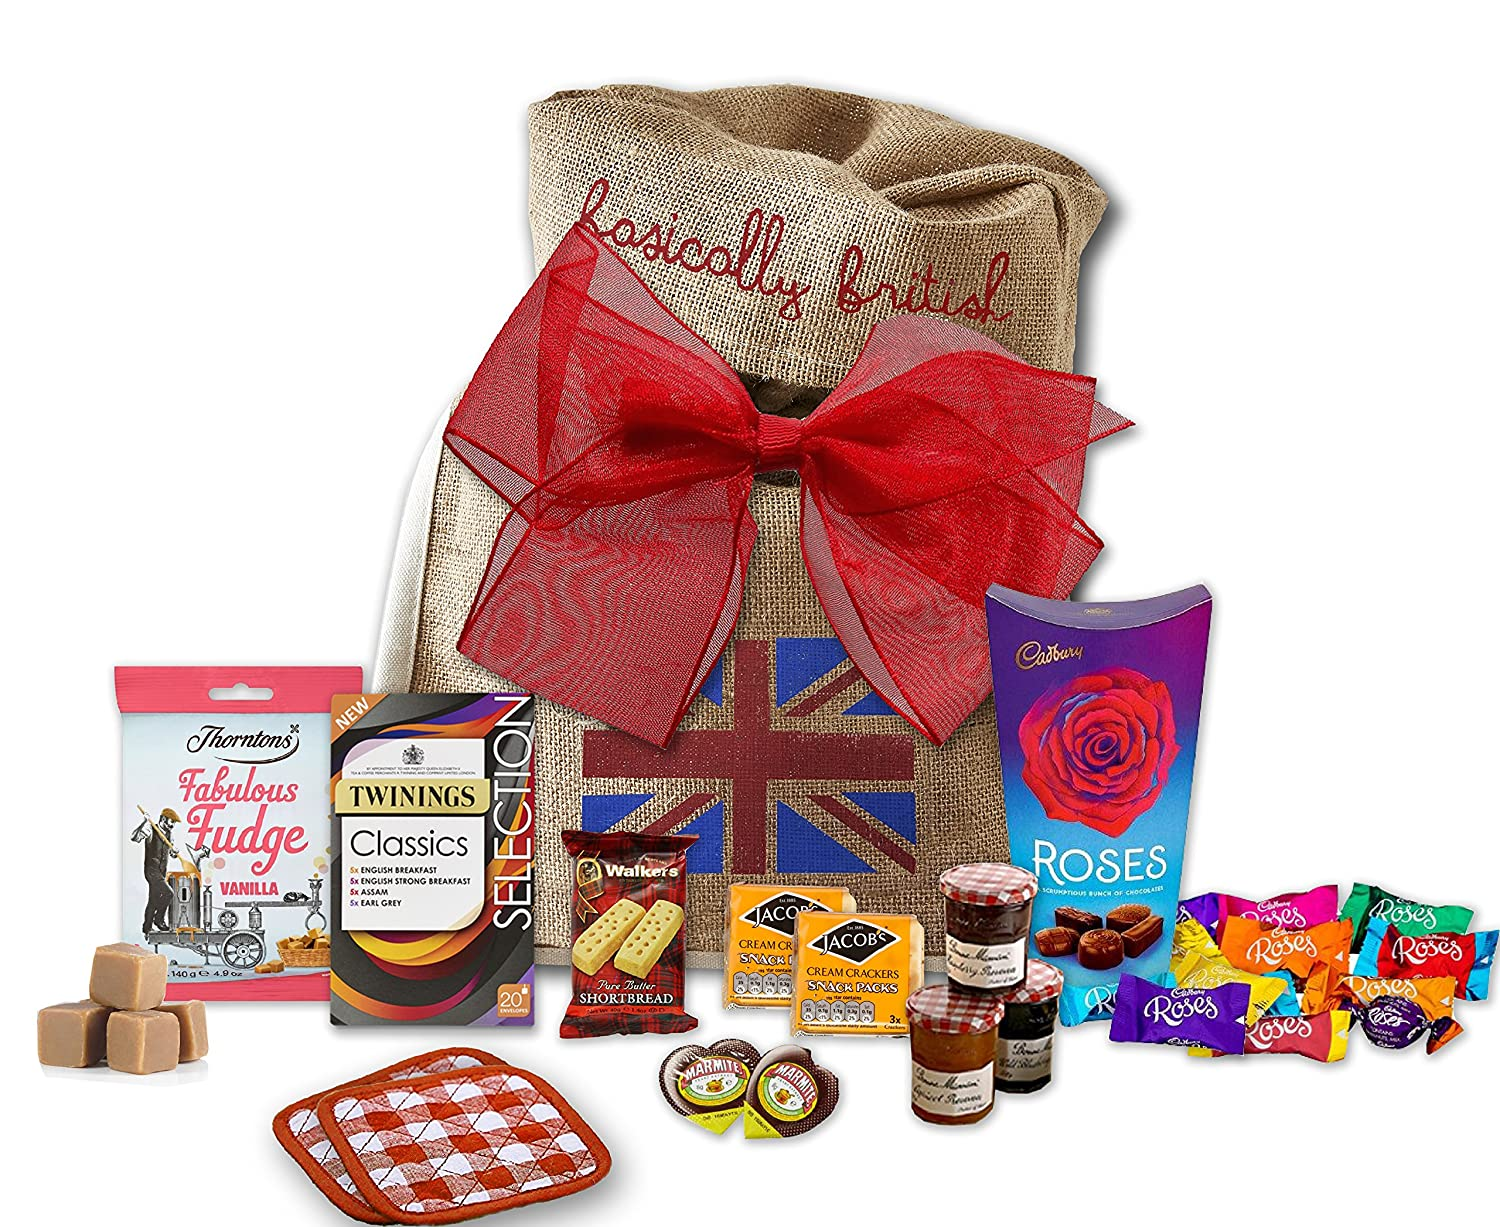 The Great British High Tea Hamper by The Yummy Palette | Birthday gift for her gift for him BritishTwinings Classic Selection 20 Tea Bags British Food Brunch Tea Gift Set in Basically British Gift Bag